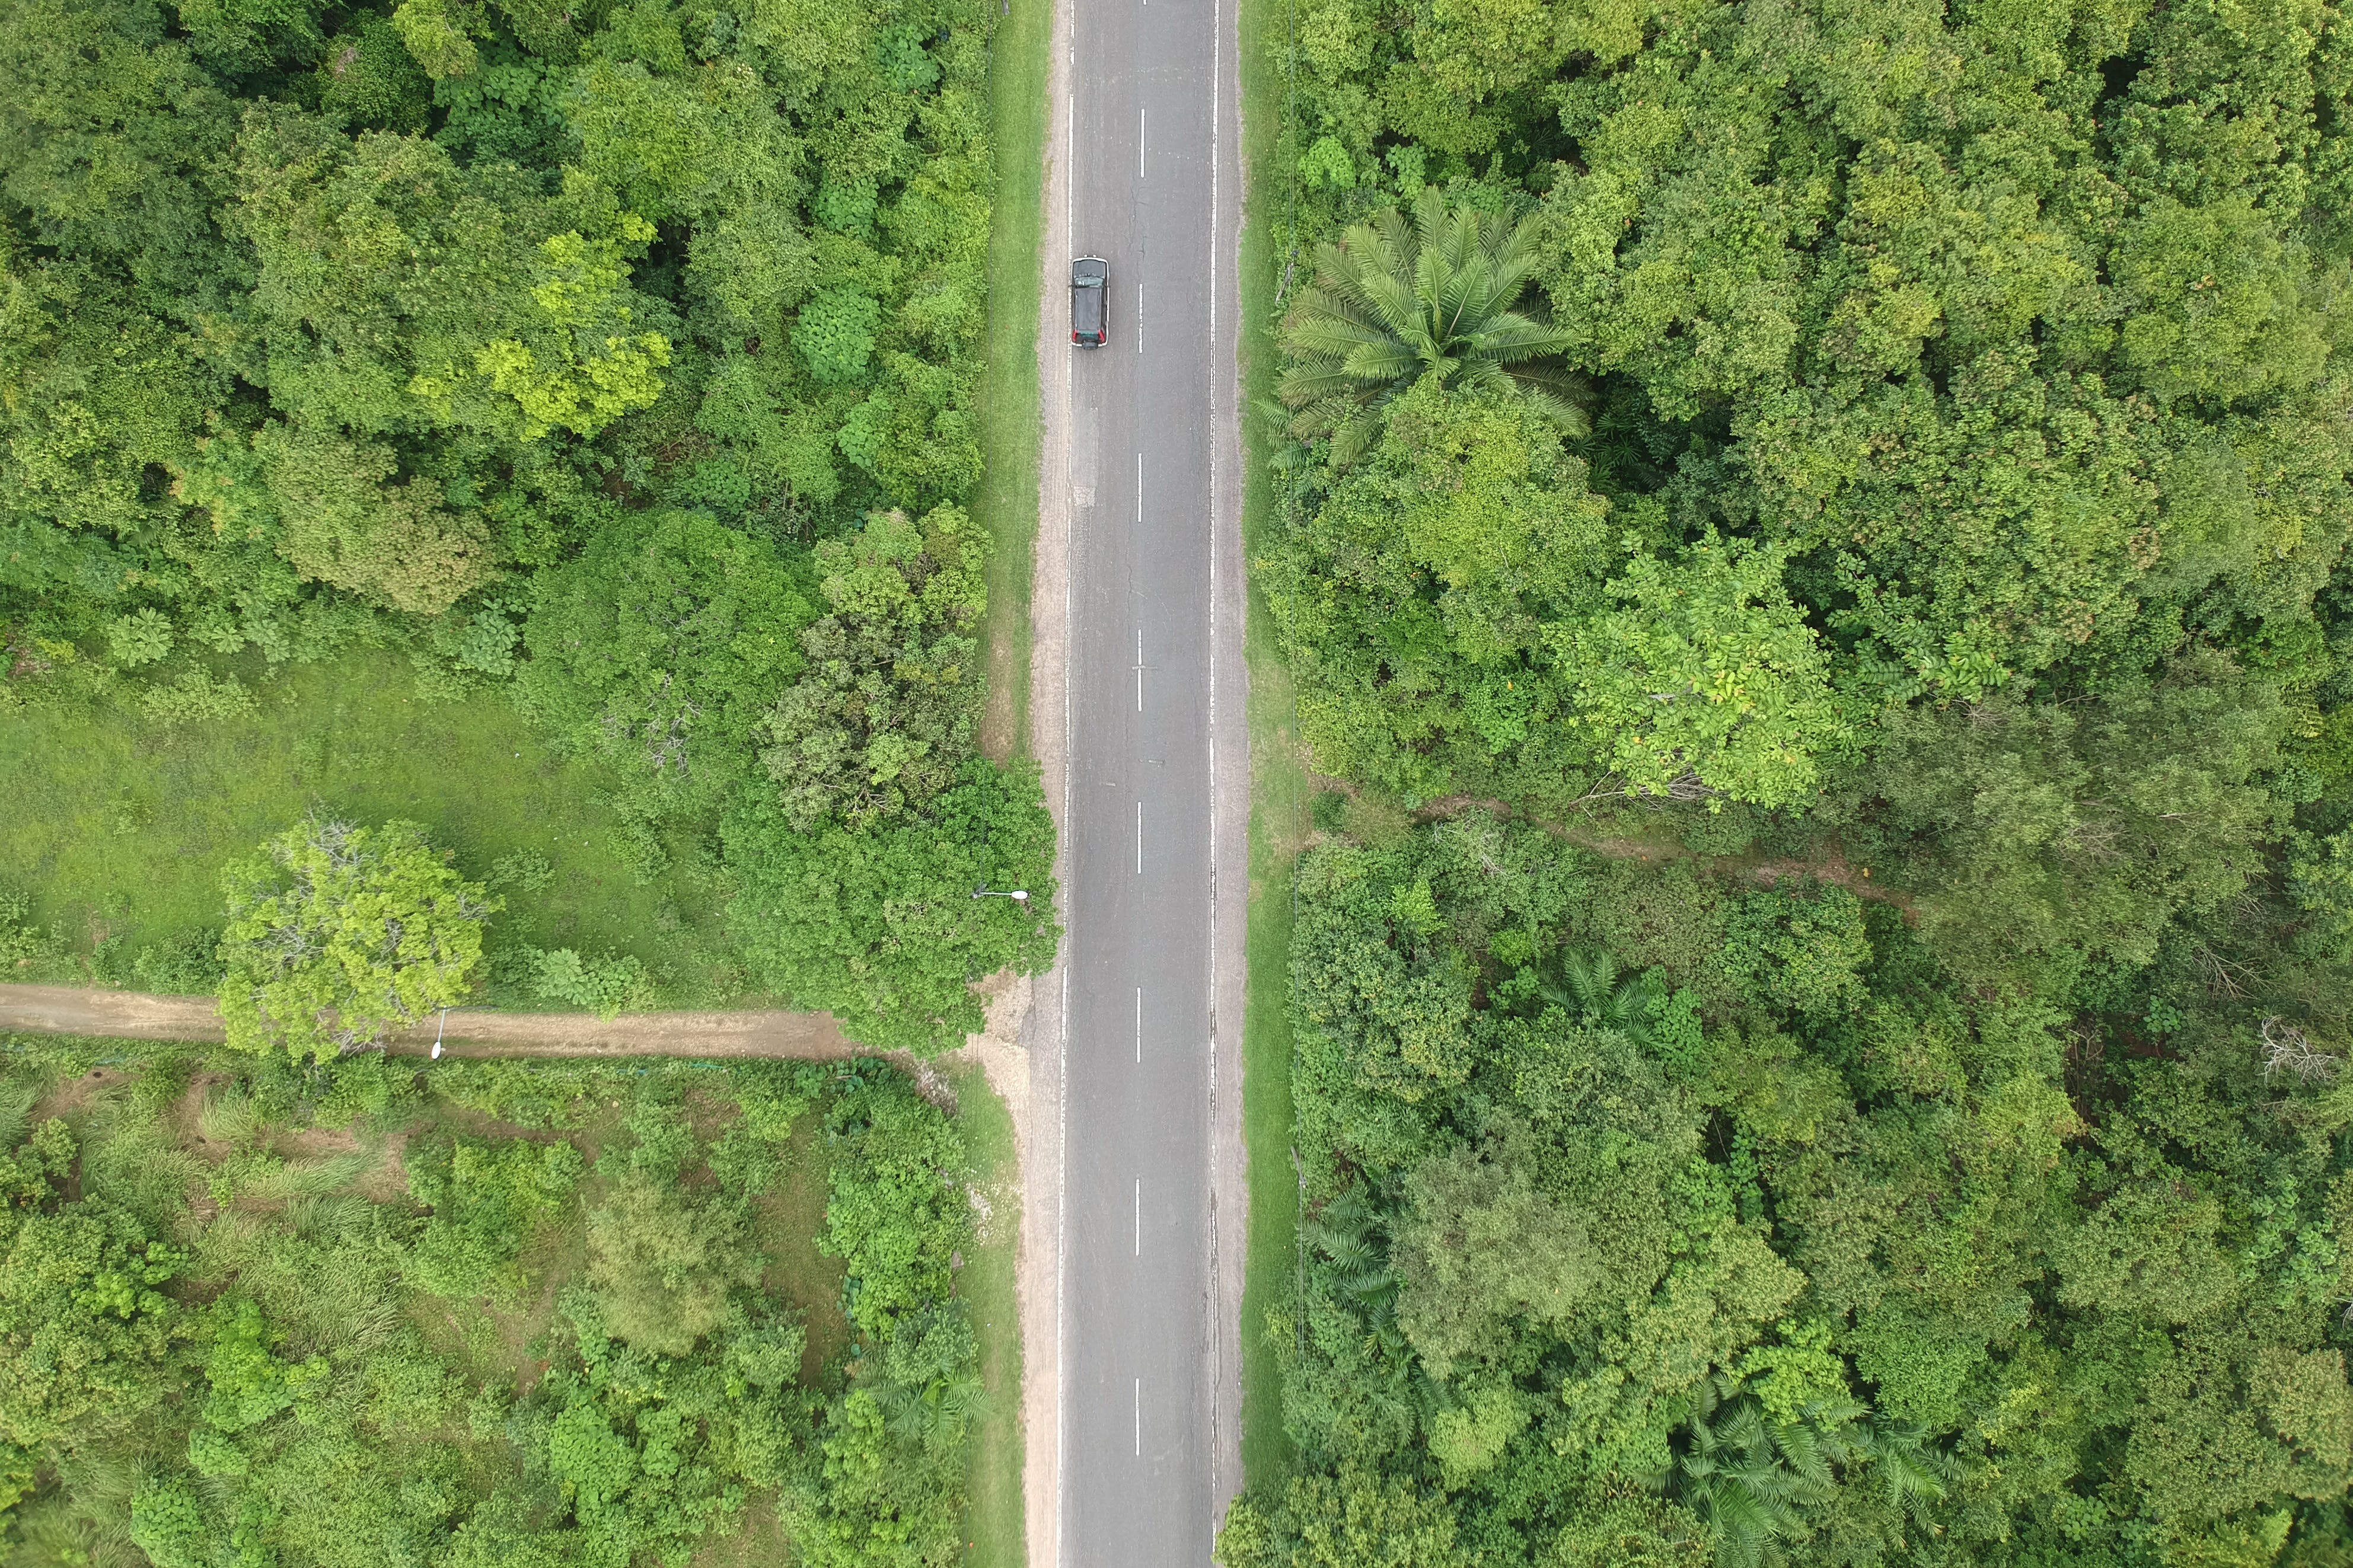 Aerial Photo of Black Vehicle on Grey Concrete Road Between Forest